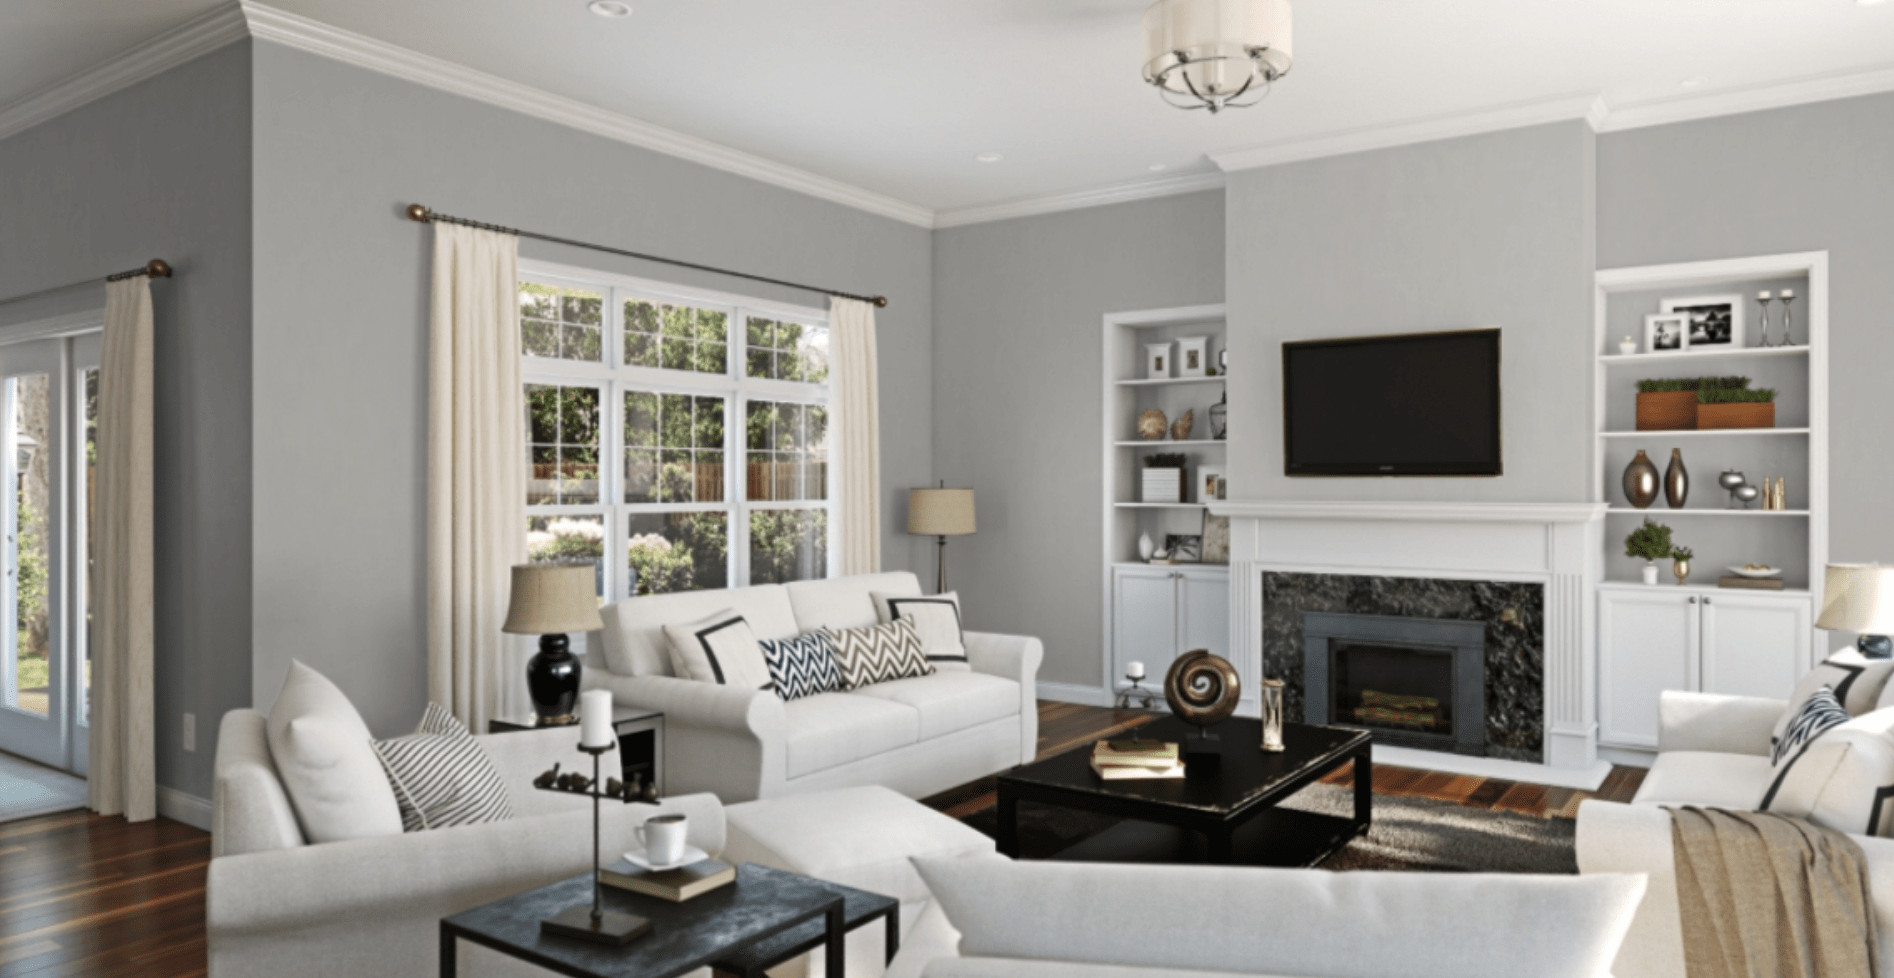 Best ideas about Paint Colors For Family Room . Save or Pin Debut of my new Gray Paint Color Now.